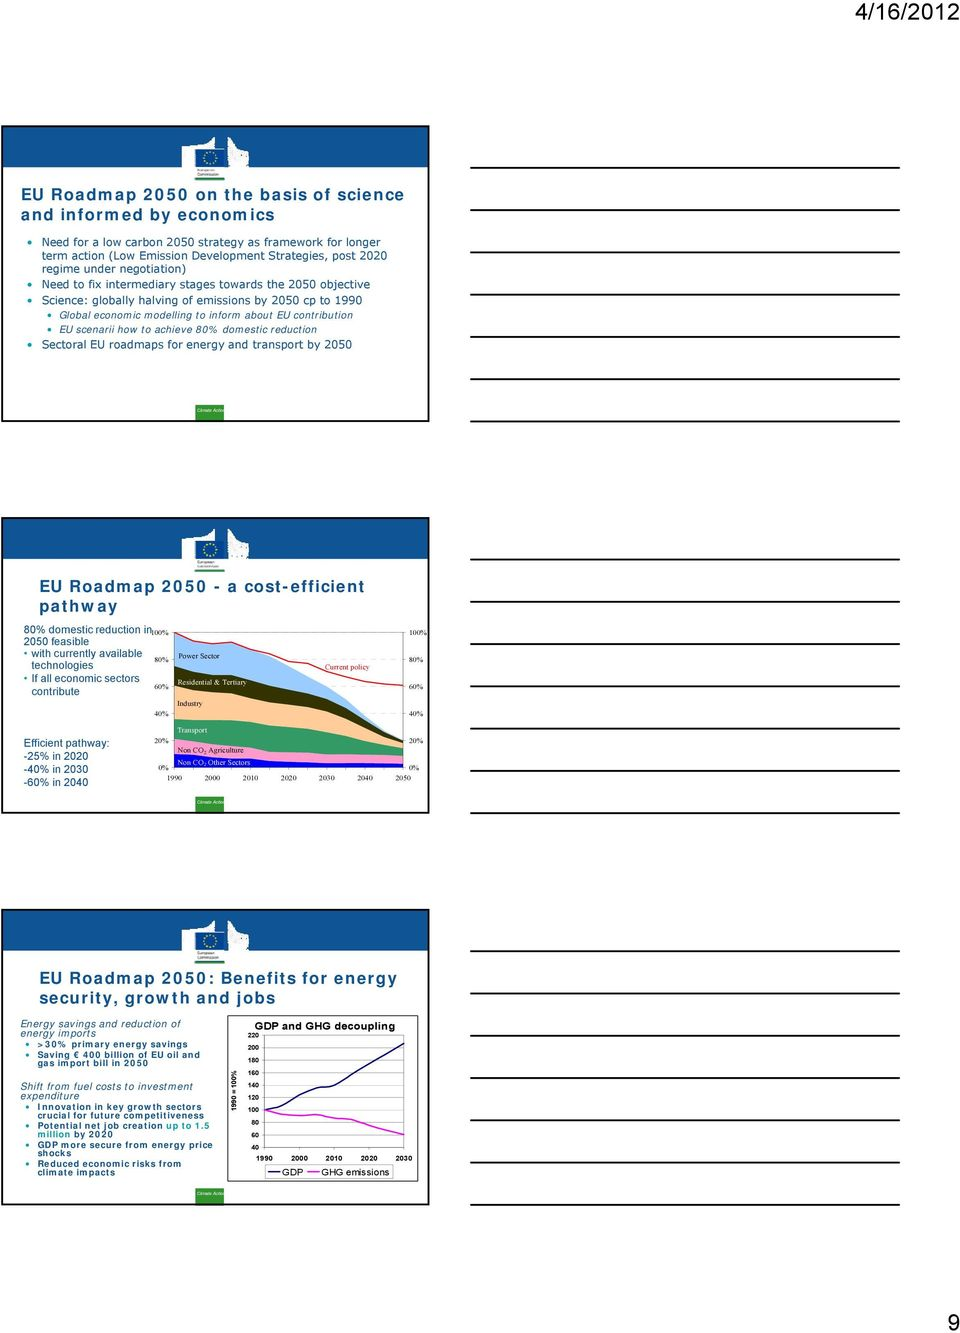 how to achieve 80% domestic reduction Sectoral EU roadmaps for energy and transport by 2050 EU Roadmap 2050 - a cost-efficient pathway 80% domestic reduction in 2050 feasible with currently available